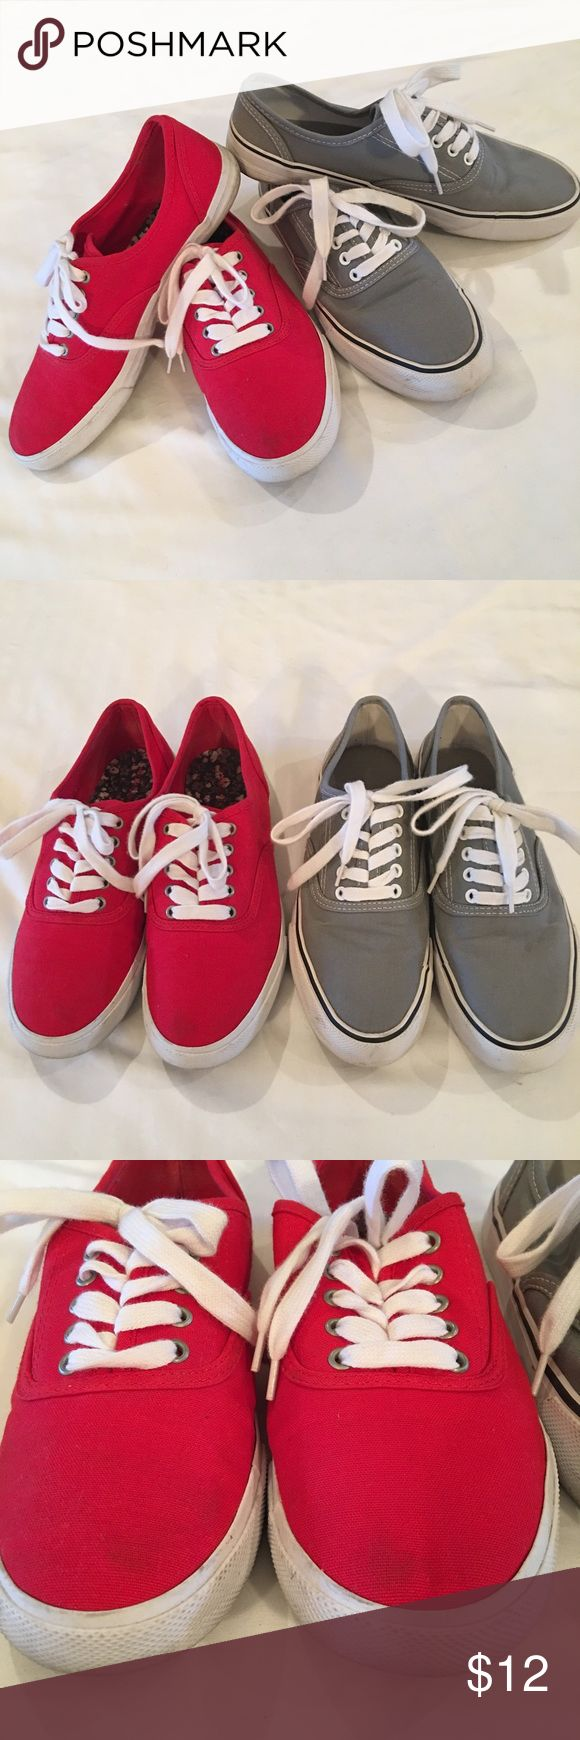 Red and Gray Sneakers Lot Fun bright red shoes look like Keds and the gray ones look like Vans. Both are size 9, both are Mossimo Supply Co. They show a little wear, see photos. The photo shows way more wear on the red toes then actually show in person. Wear is hardly noticeable. Sold together for price listed. Mossimo Supply Co. Shoes Sneakers